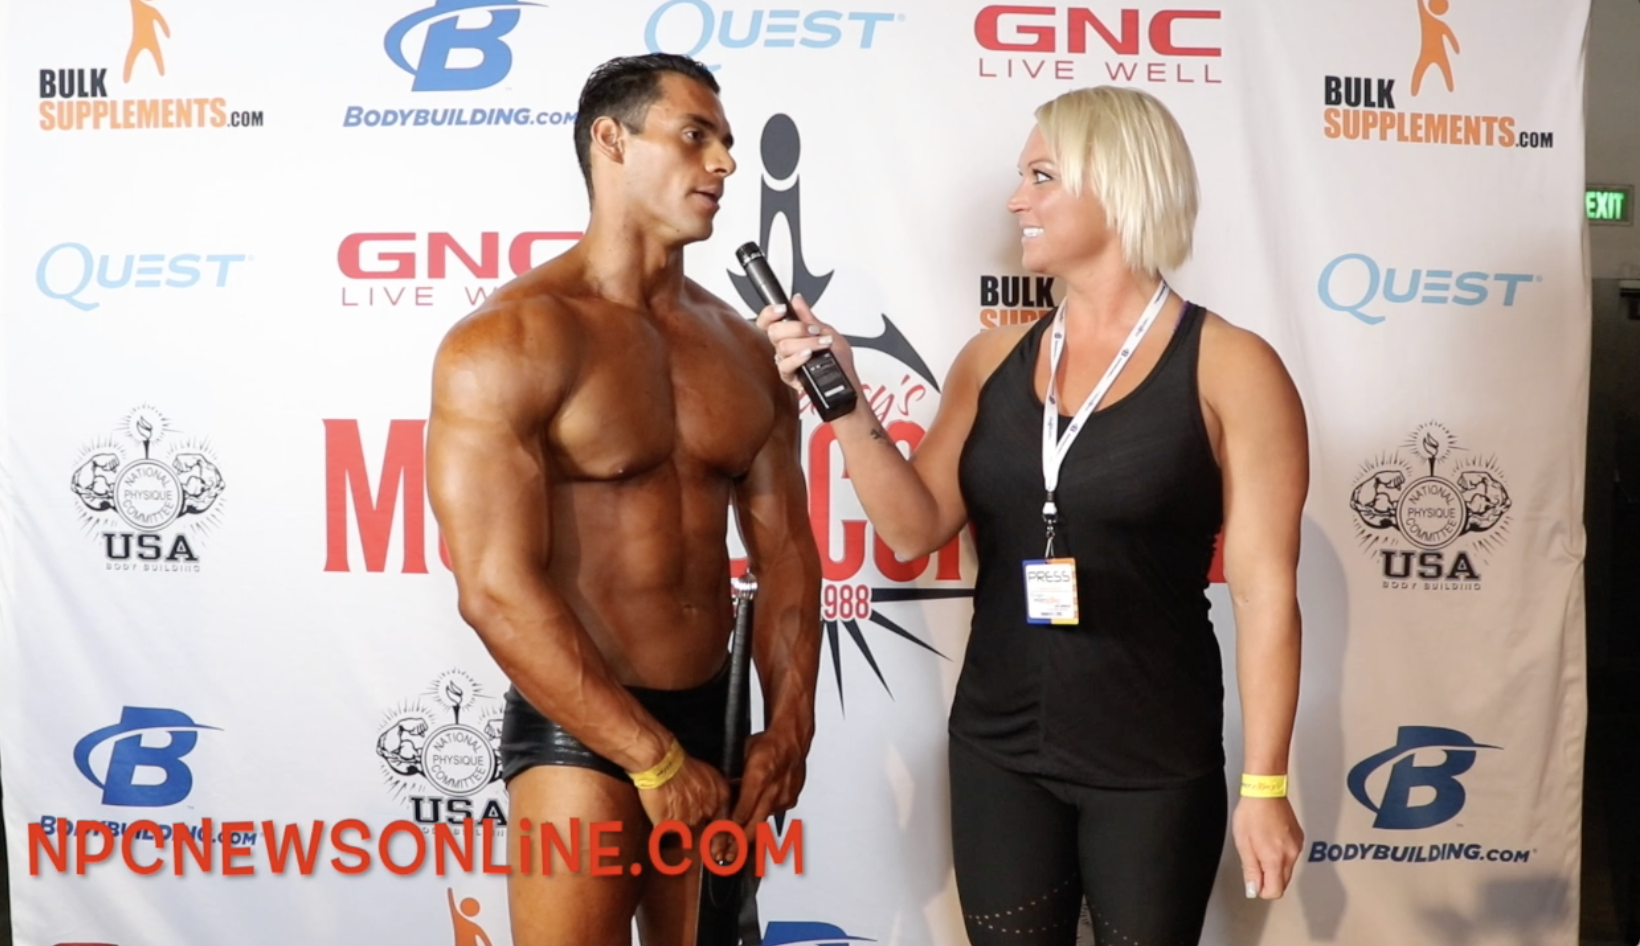 2018 NPC Muscle Contest Challenge Classic Physique Winner Alan Garcia Contest Video